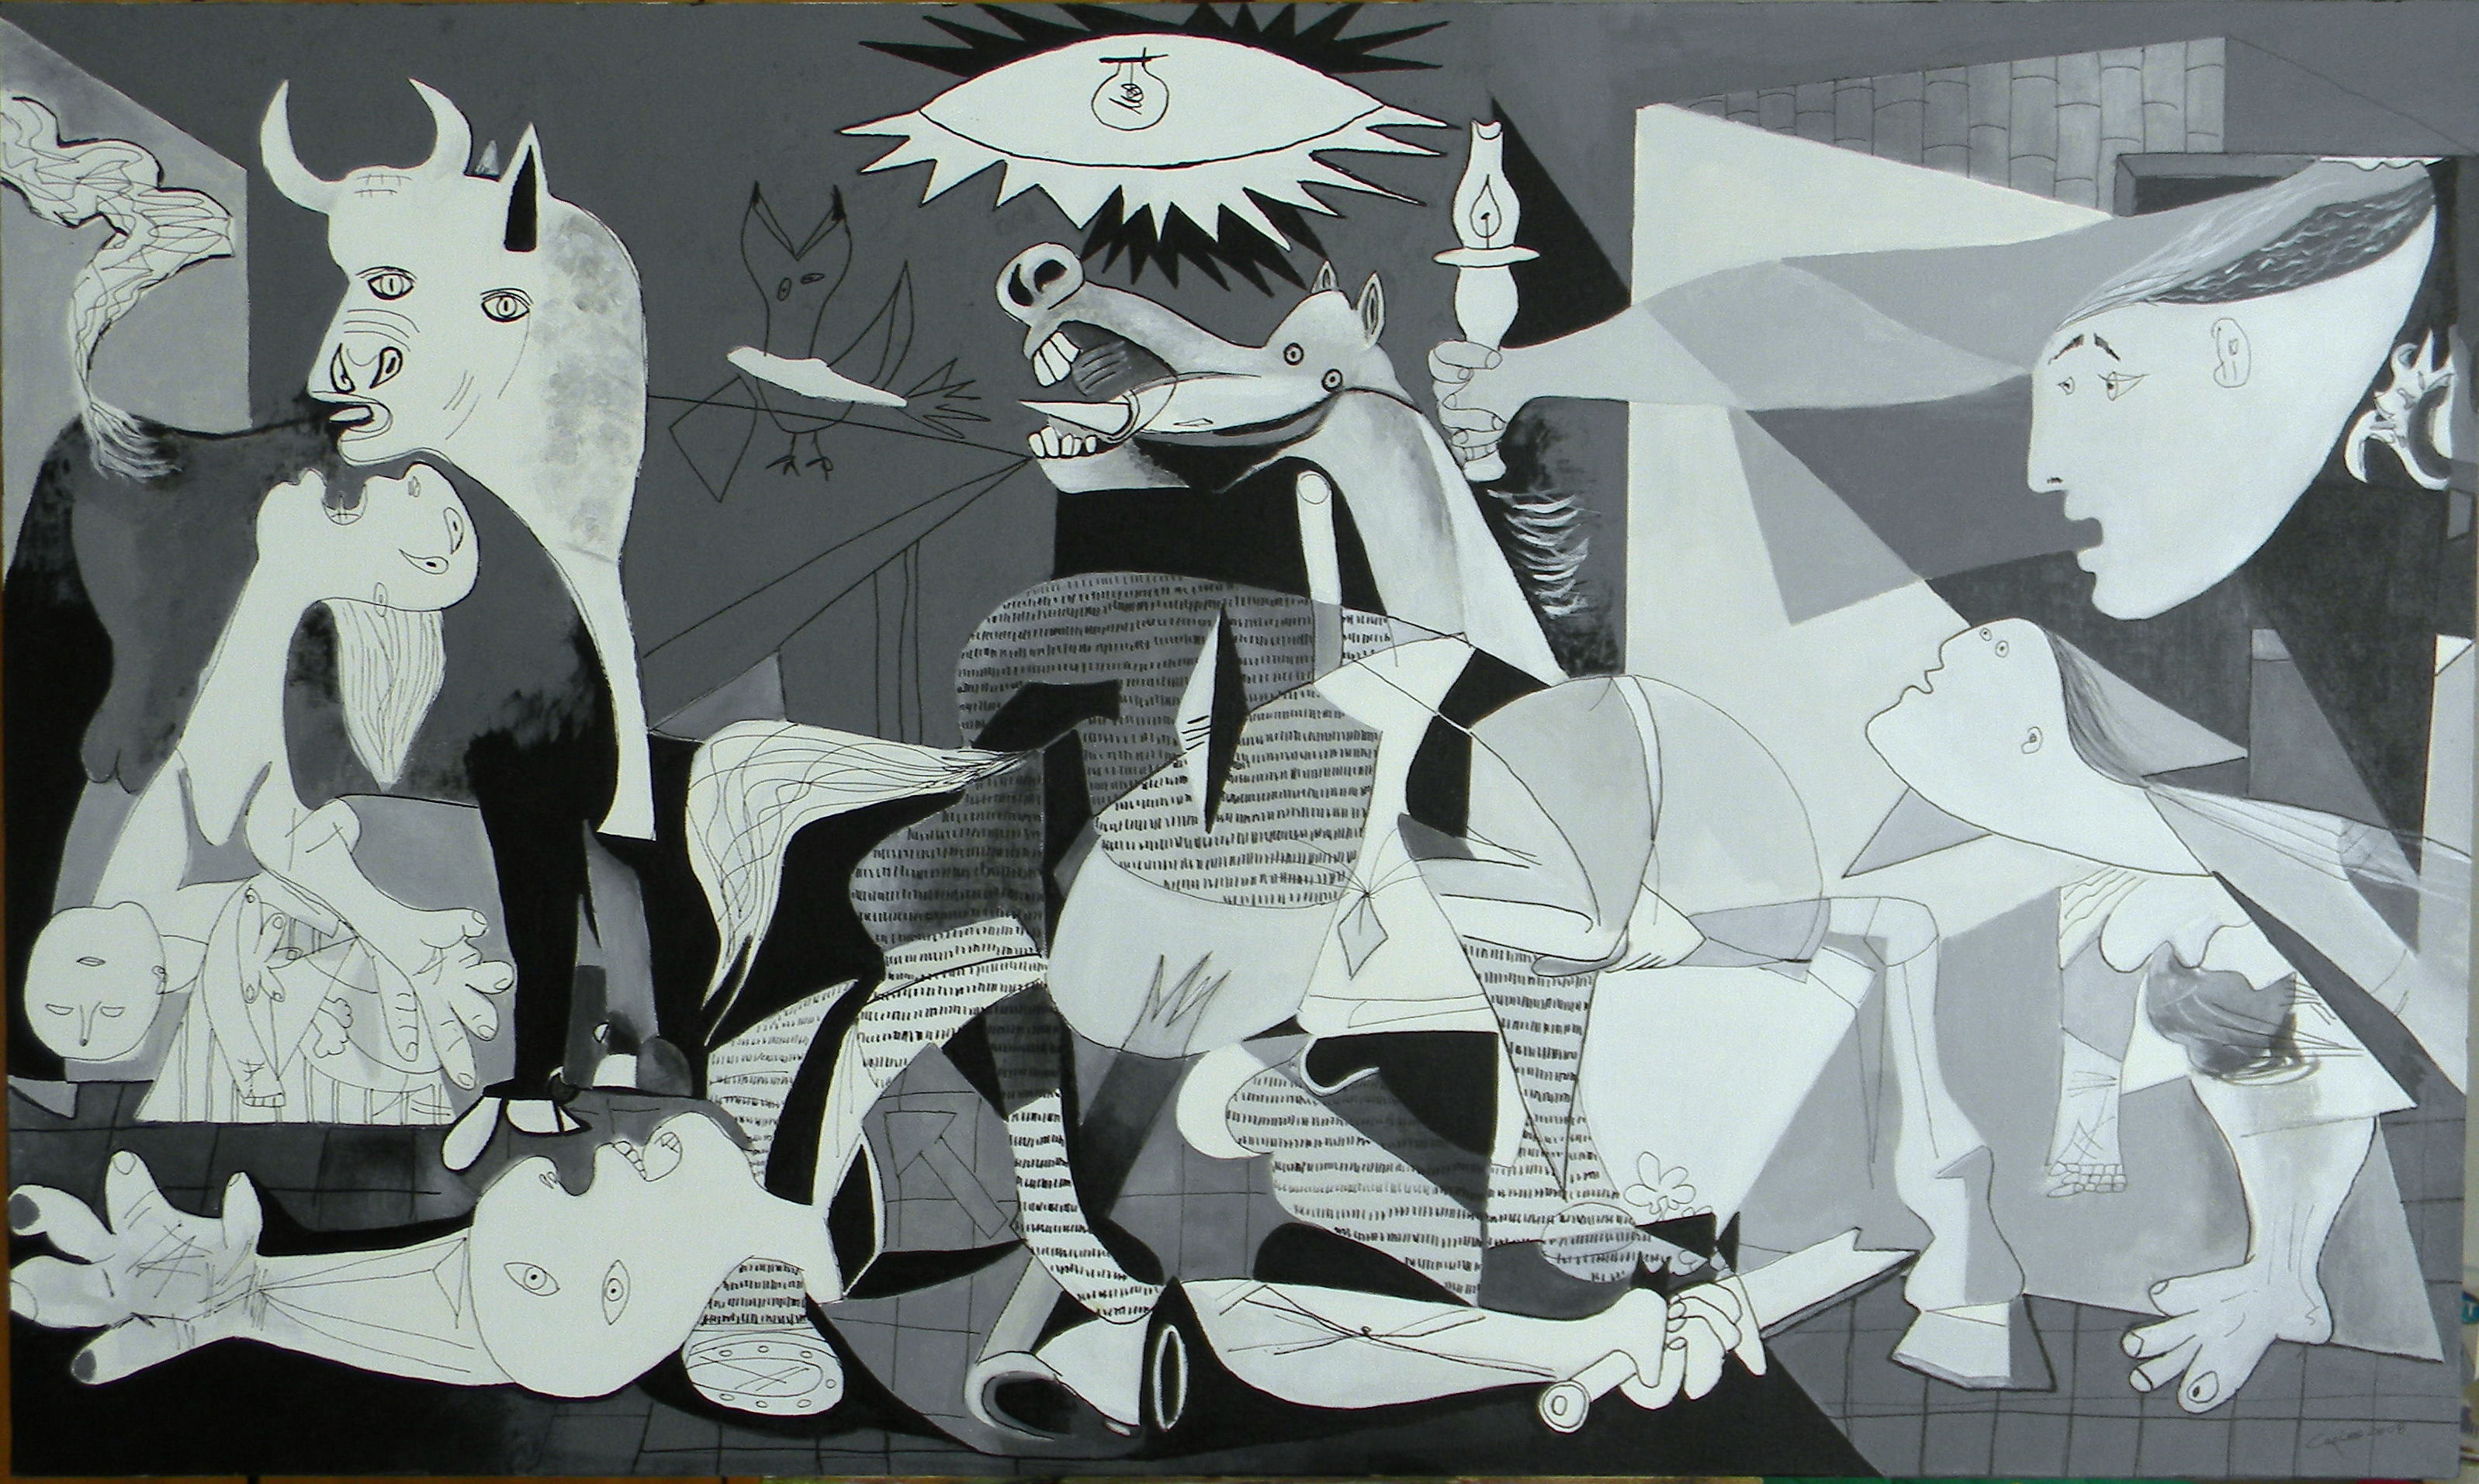 http://lounge.obviousmag.org/tanto_mar/guernica.jpg